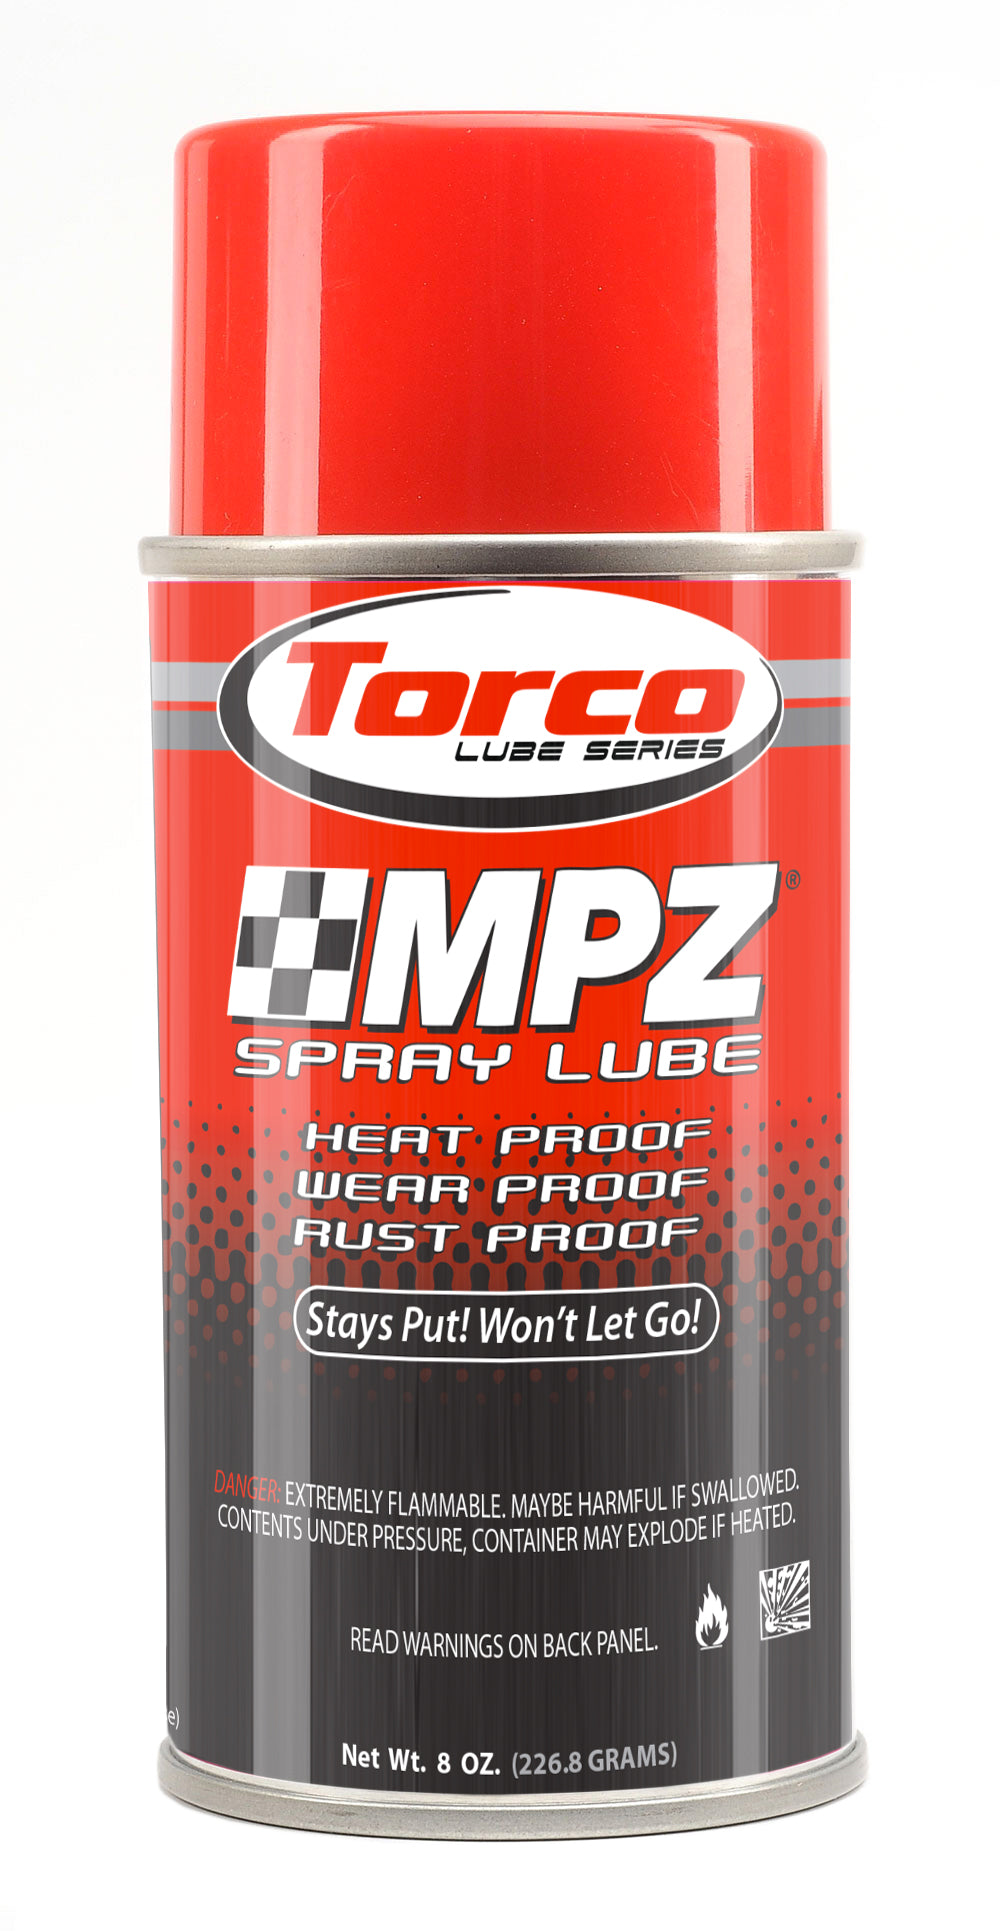 MPZ Spray engine Assembly Lube